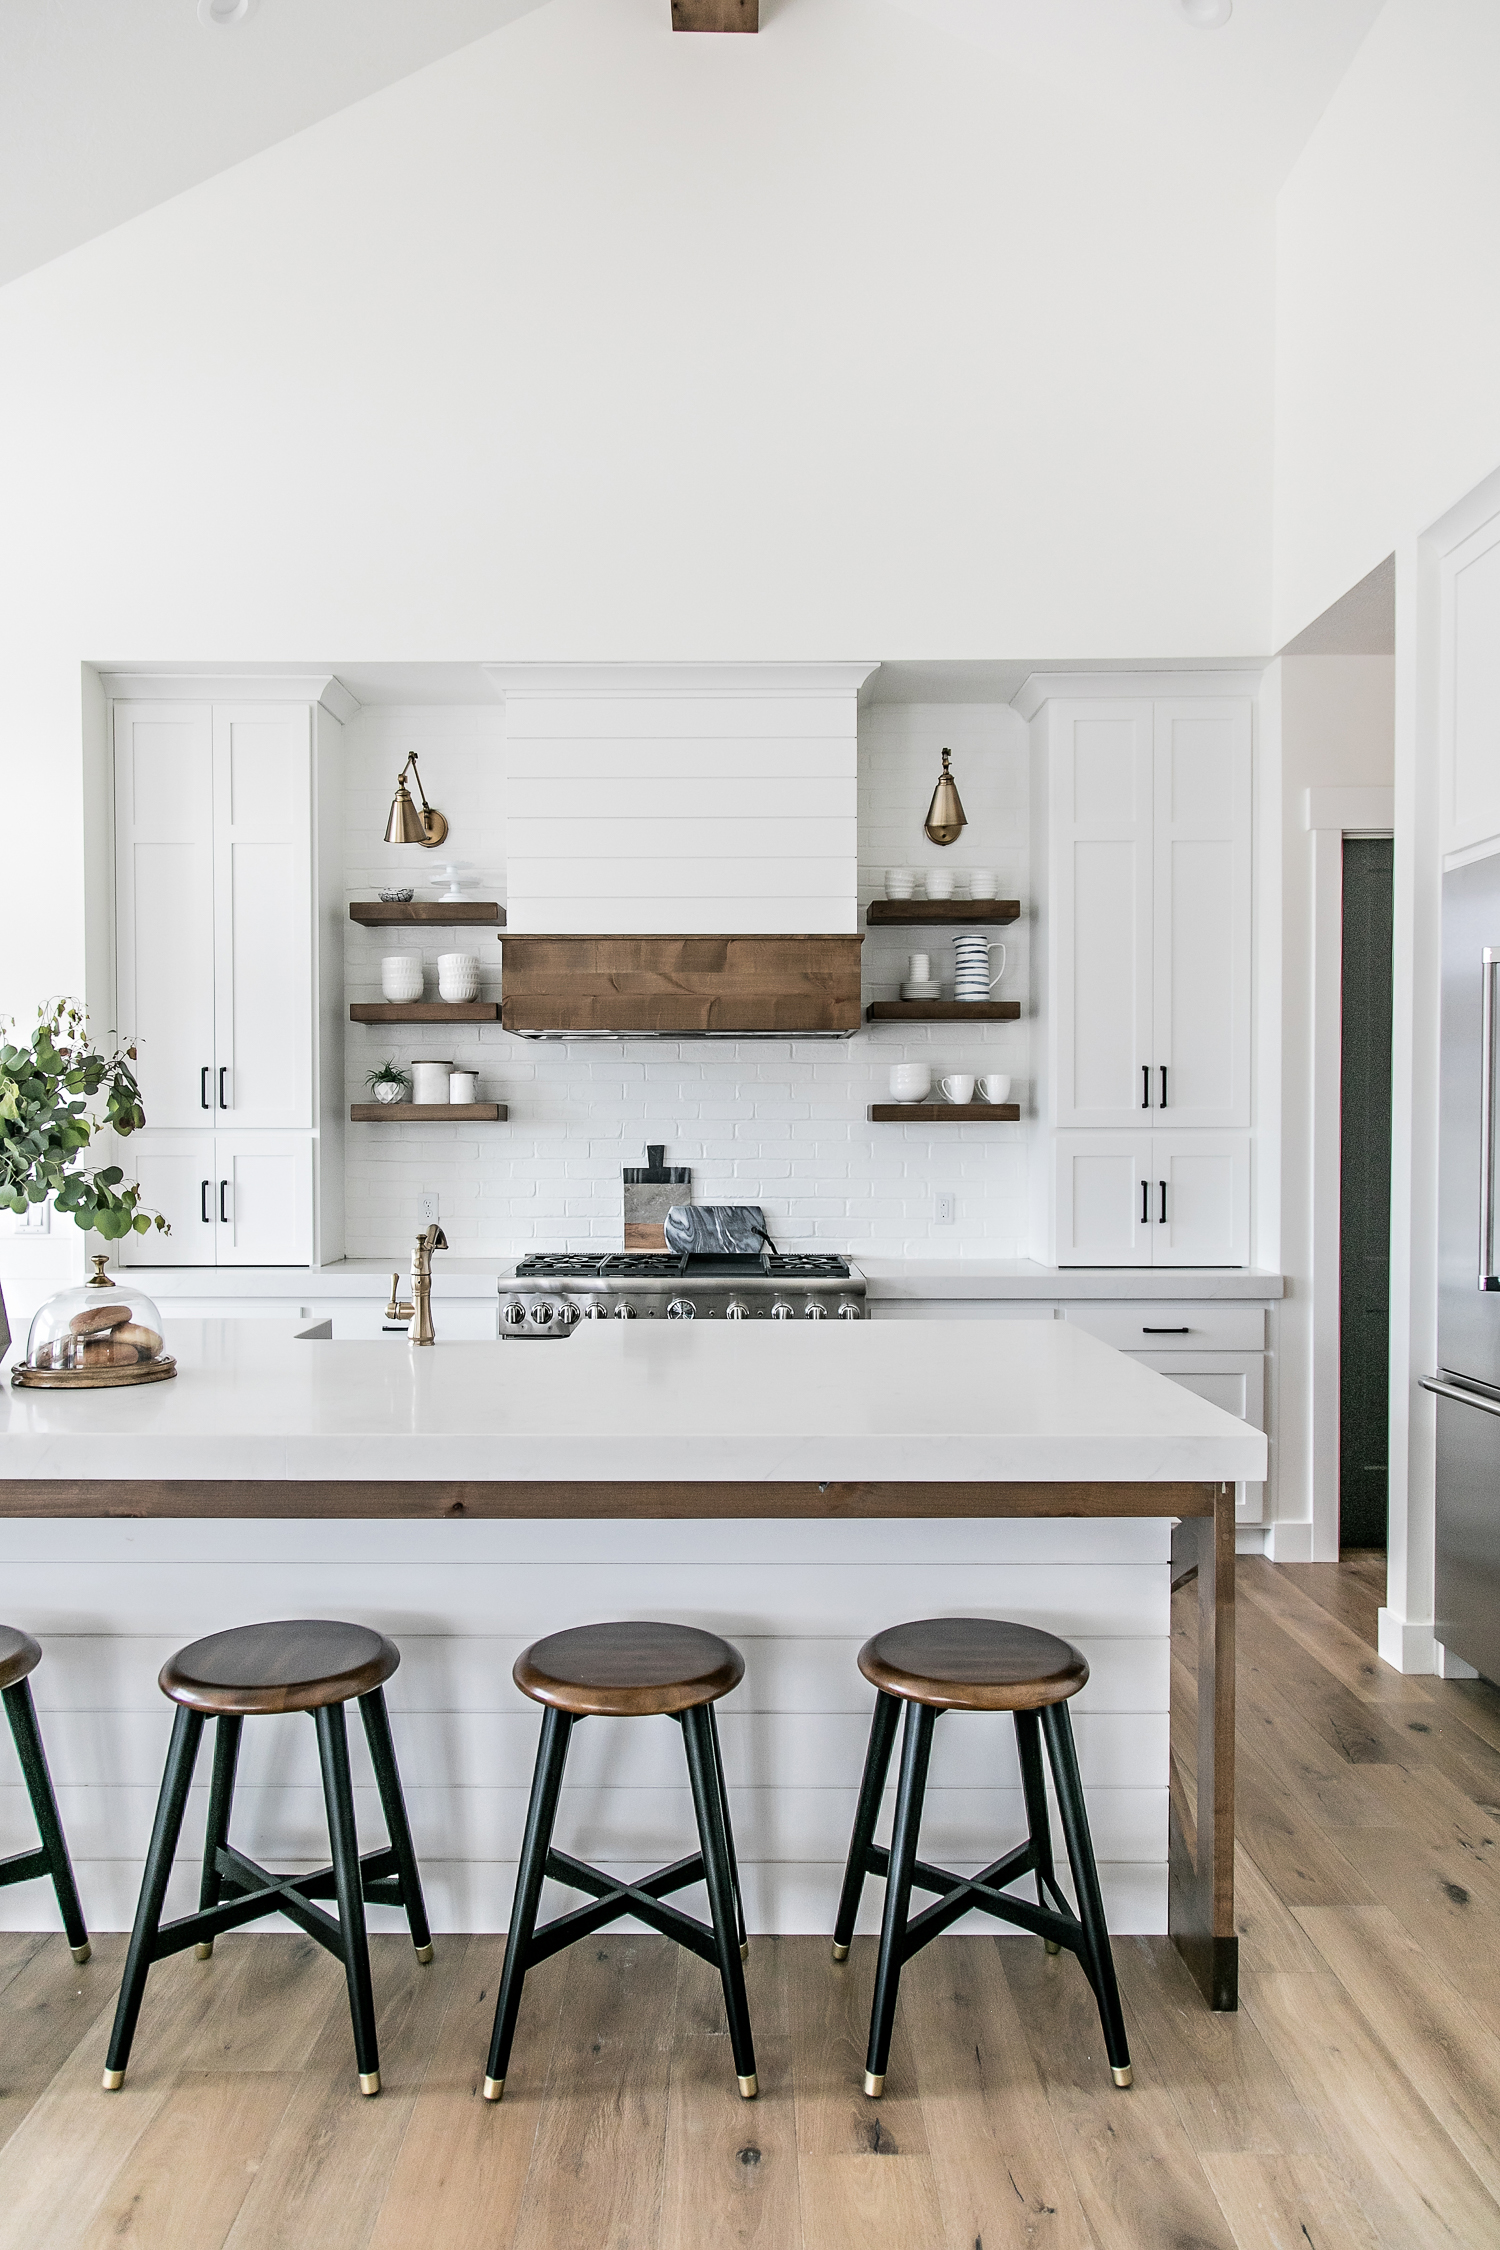 the design of the kitchen centered around my desire to have a two toned island i designed the island to have a center base with shiplap detail - Modern Farmhouse Kitchen